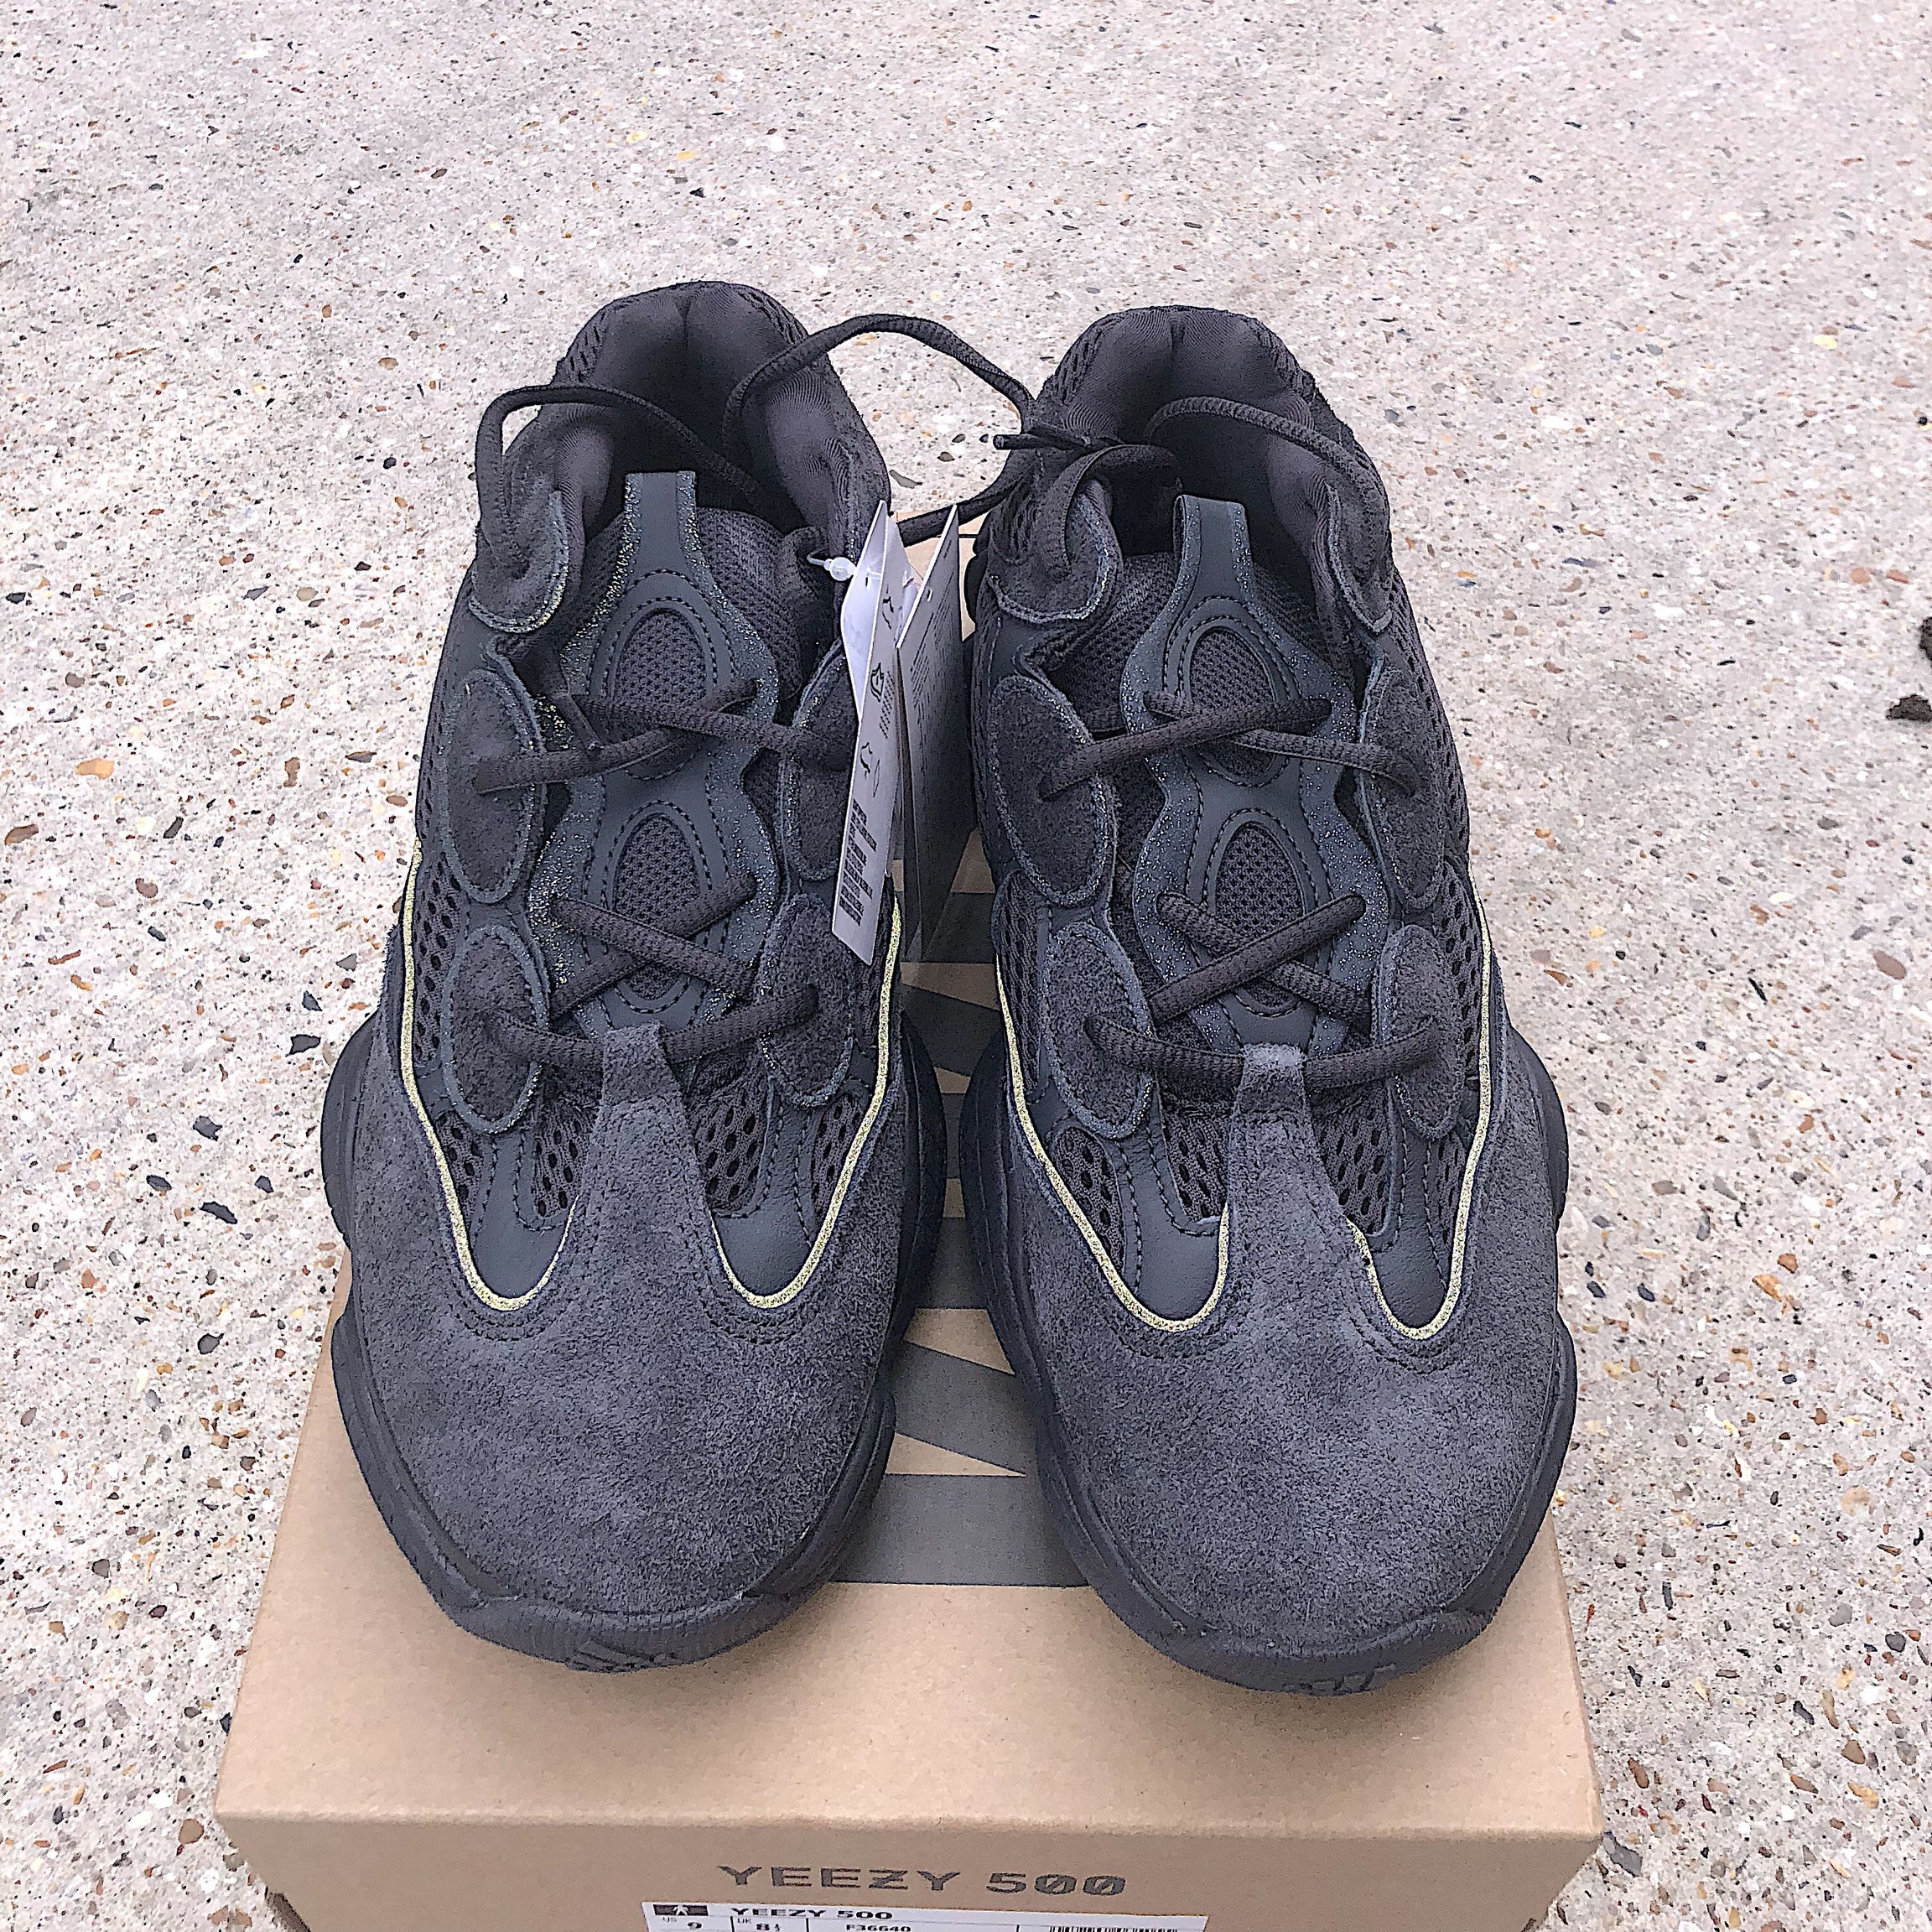 69902836f Adidas Yeezy 500 Utility Black. Deadstock Brand new with for - Depop